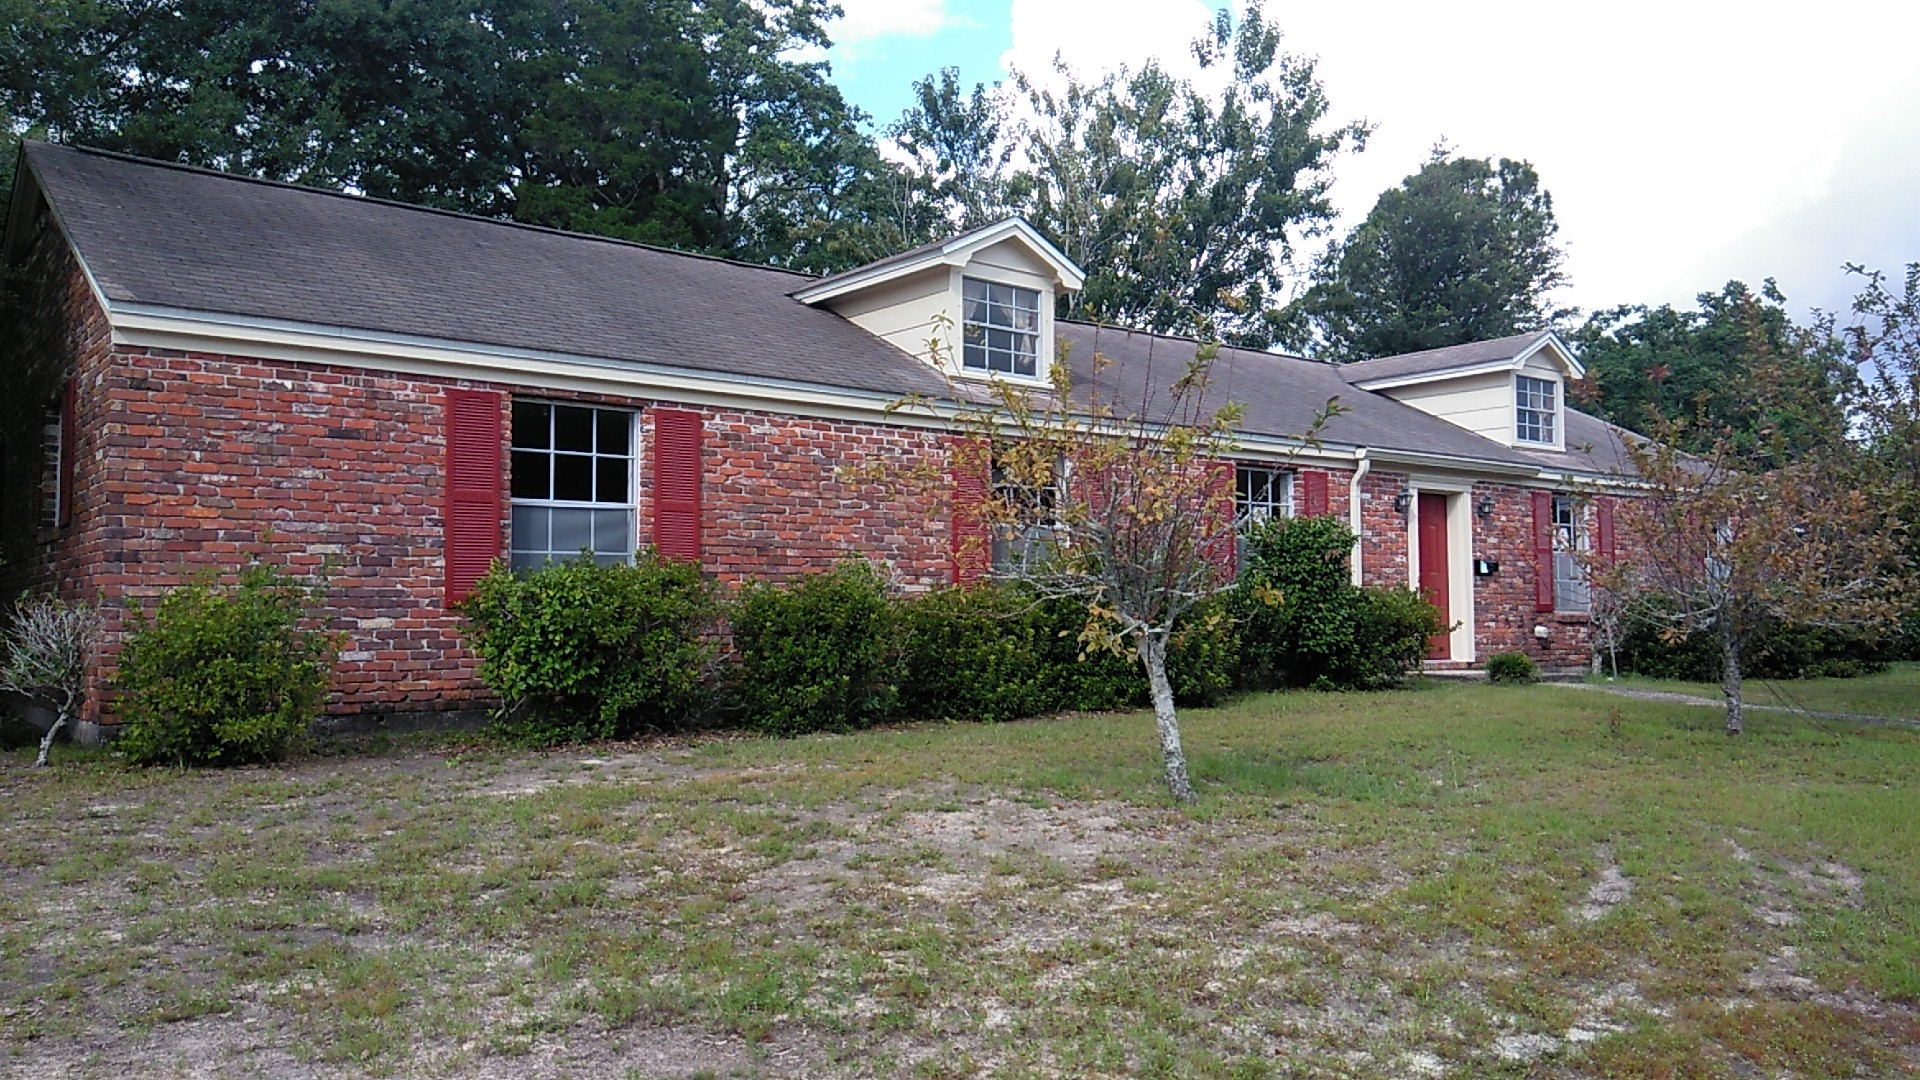 FORECLOSURE! OWN FOR LESS THAN RENT! 4 Bedroom 2 Bathroom Home for ONLY $143,000!